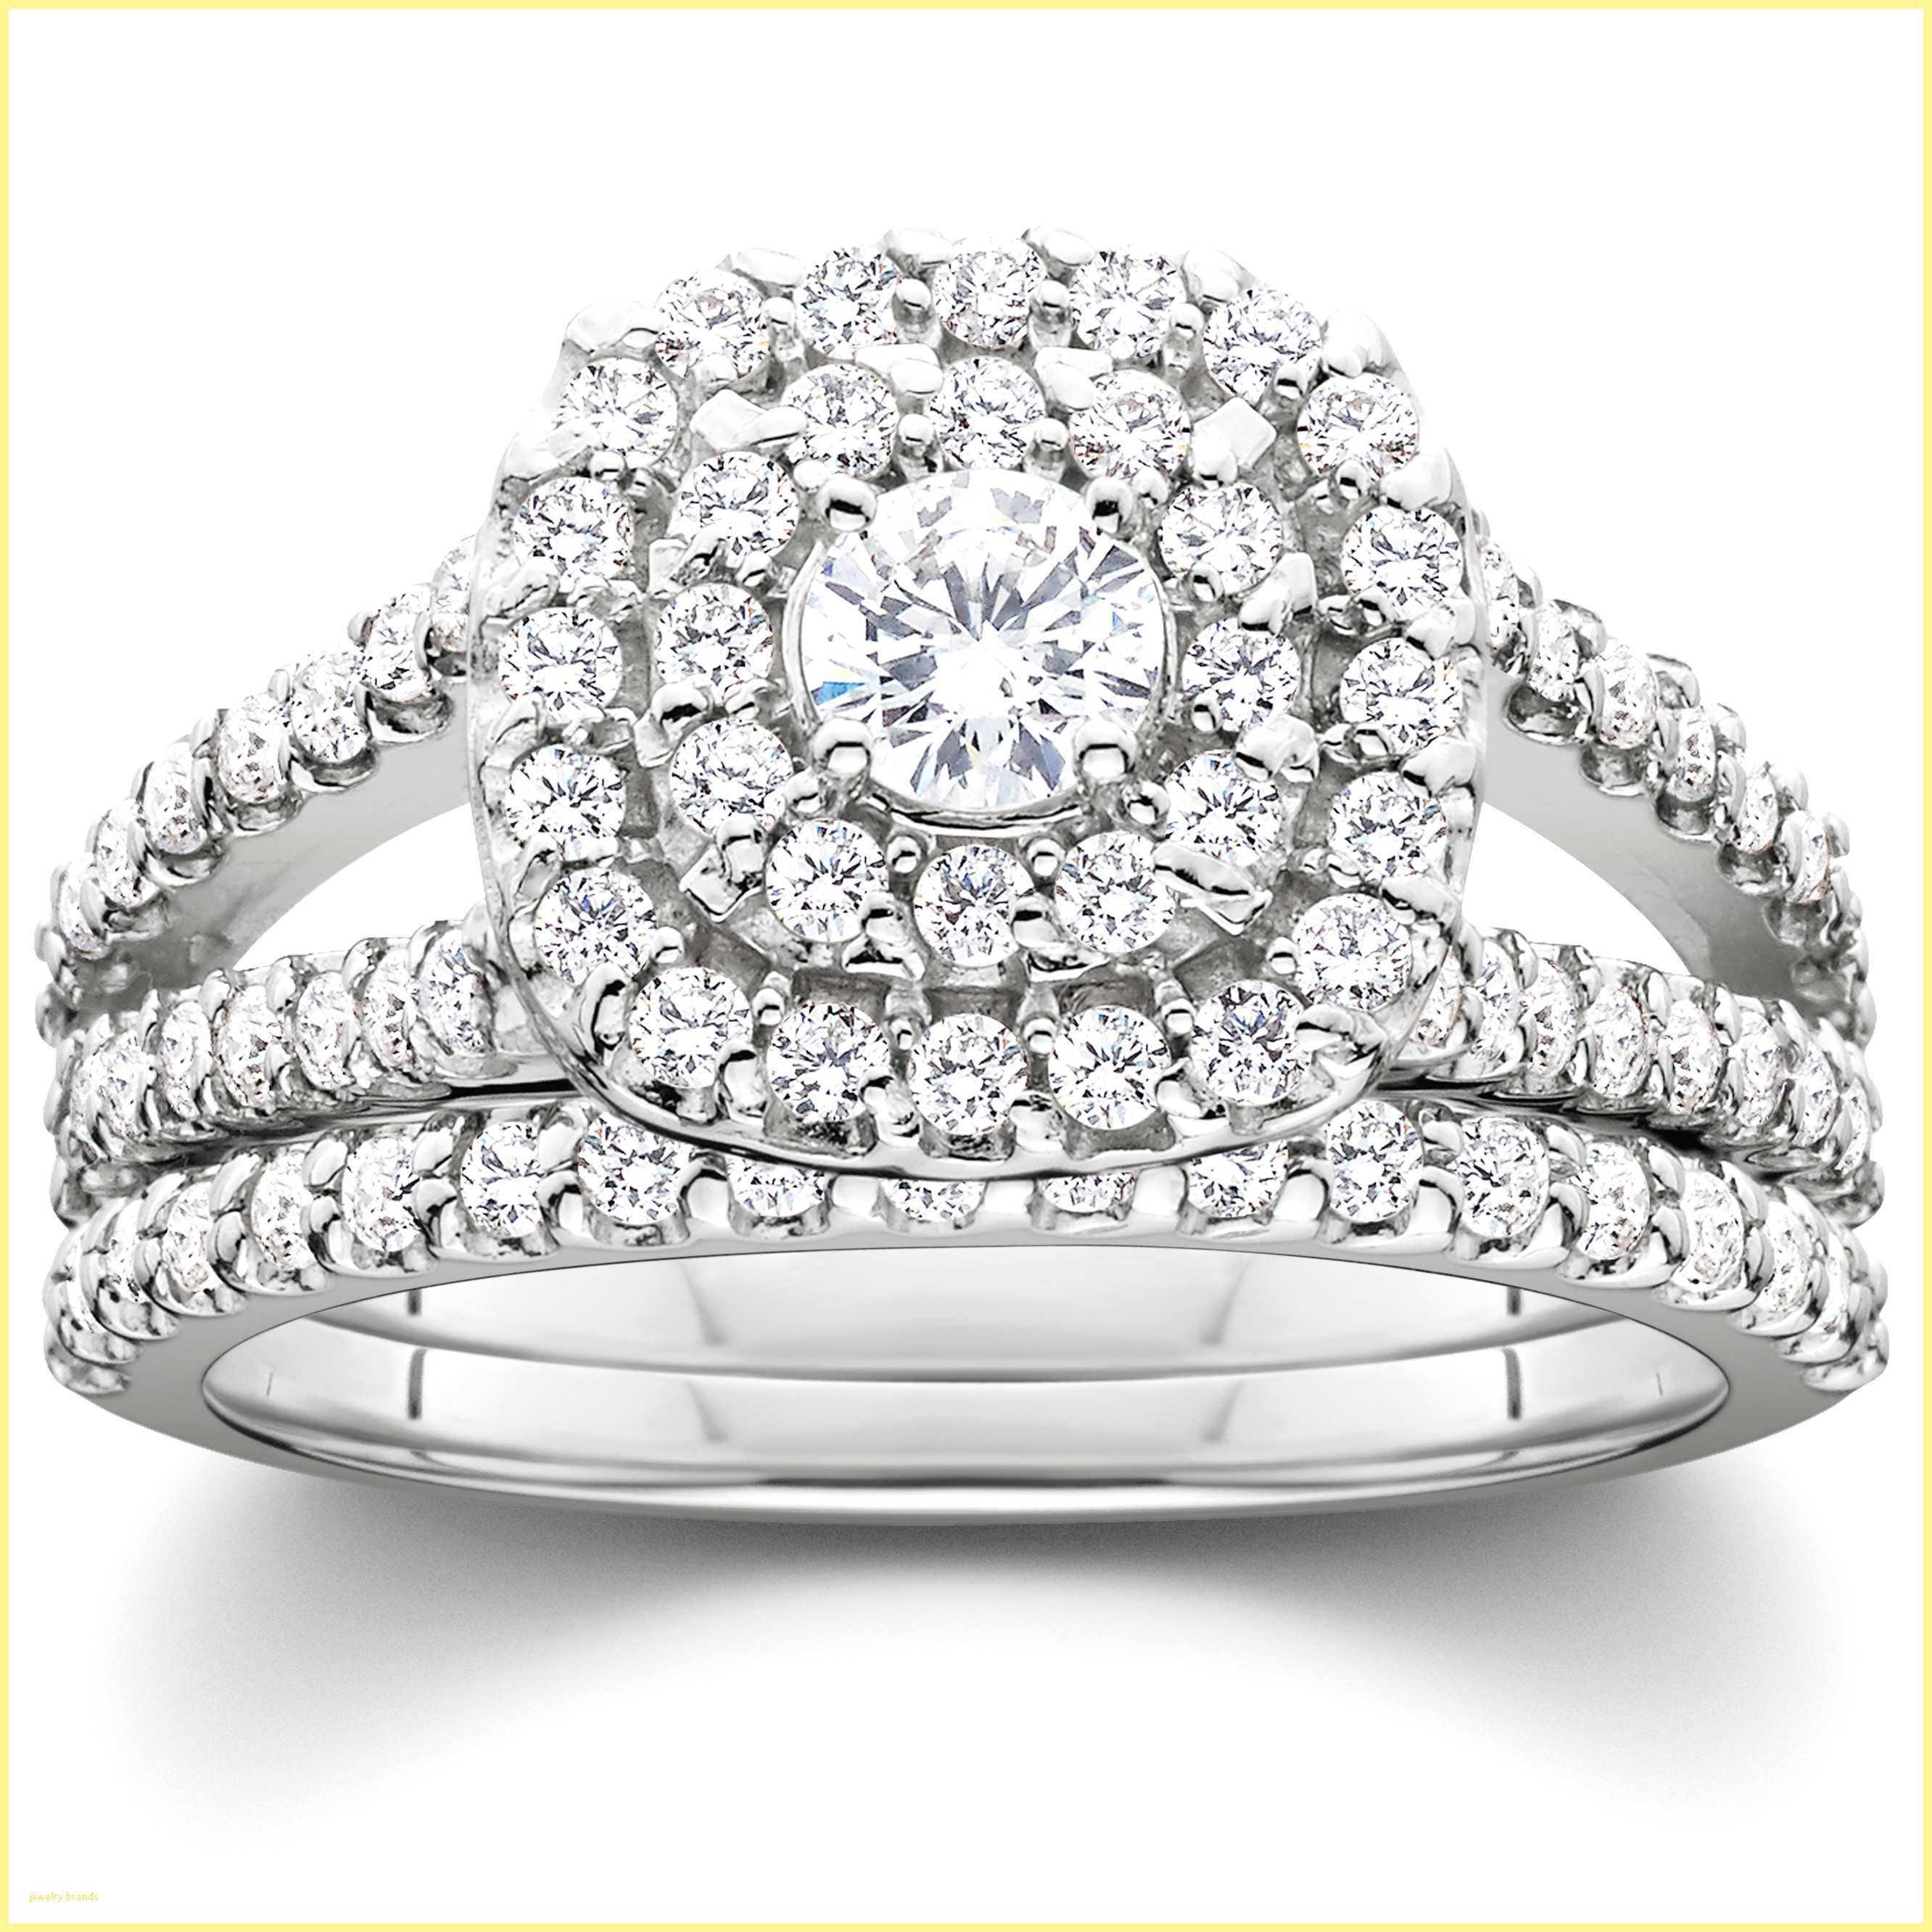 Sears Wedding Rings Clearance Sears Gold Jewelry Clearance Great Sears Diamond Rin White Gold Wedding Ring Set Wedding Ring Halo Cushion Diamond Bridal Sets